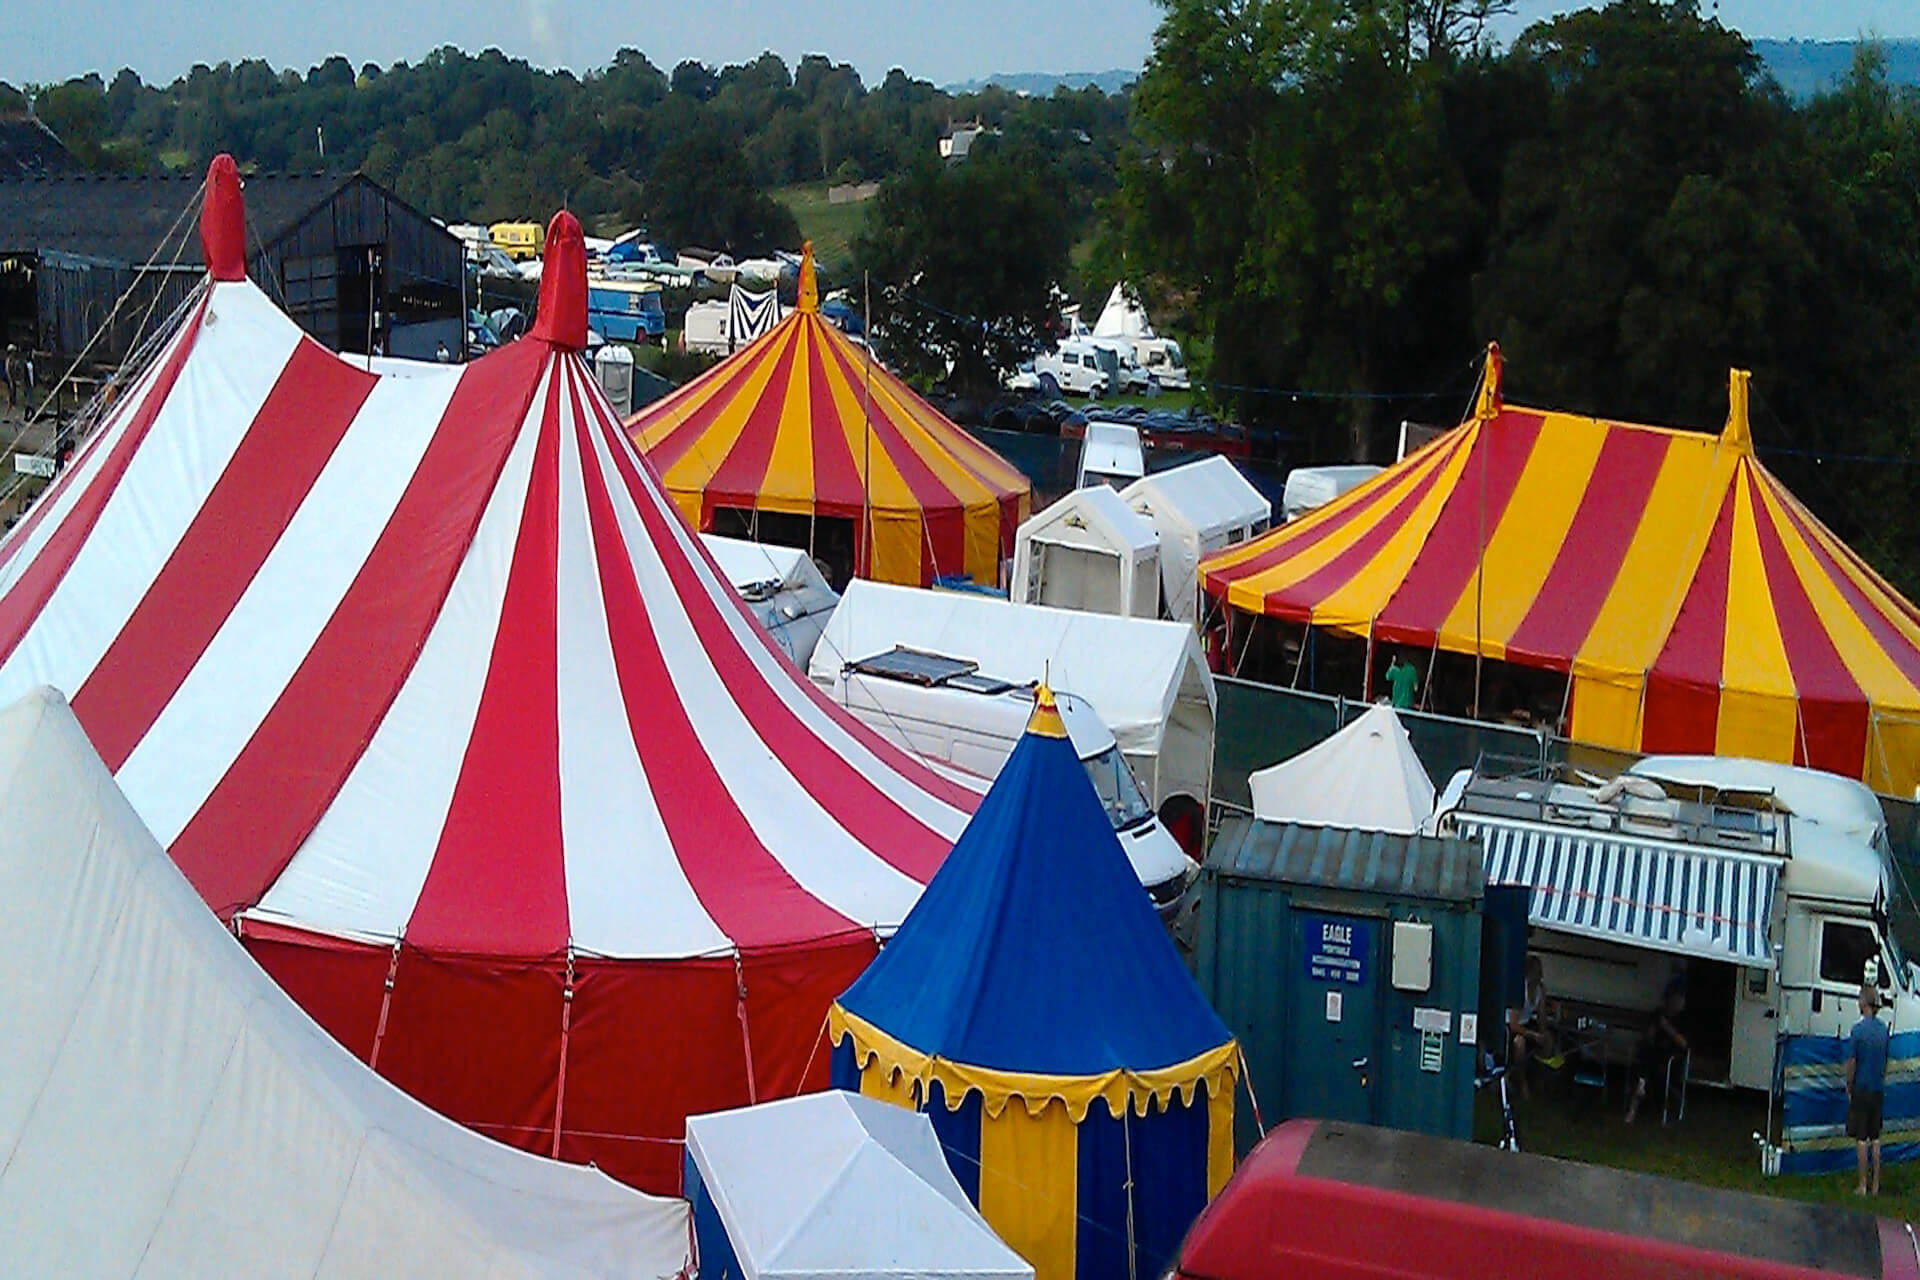 Colourful circus marquees from Bigtopmania  at Croissant Neuf festival Usk